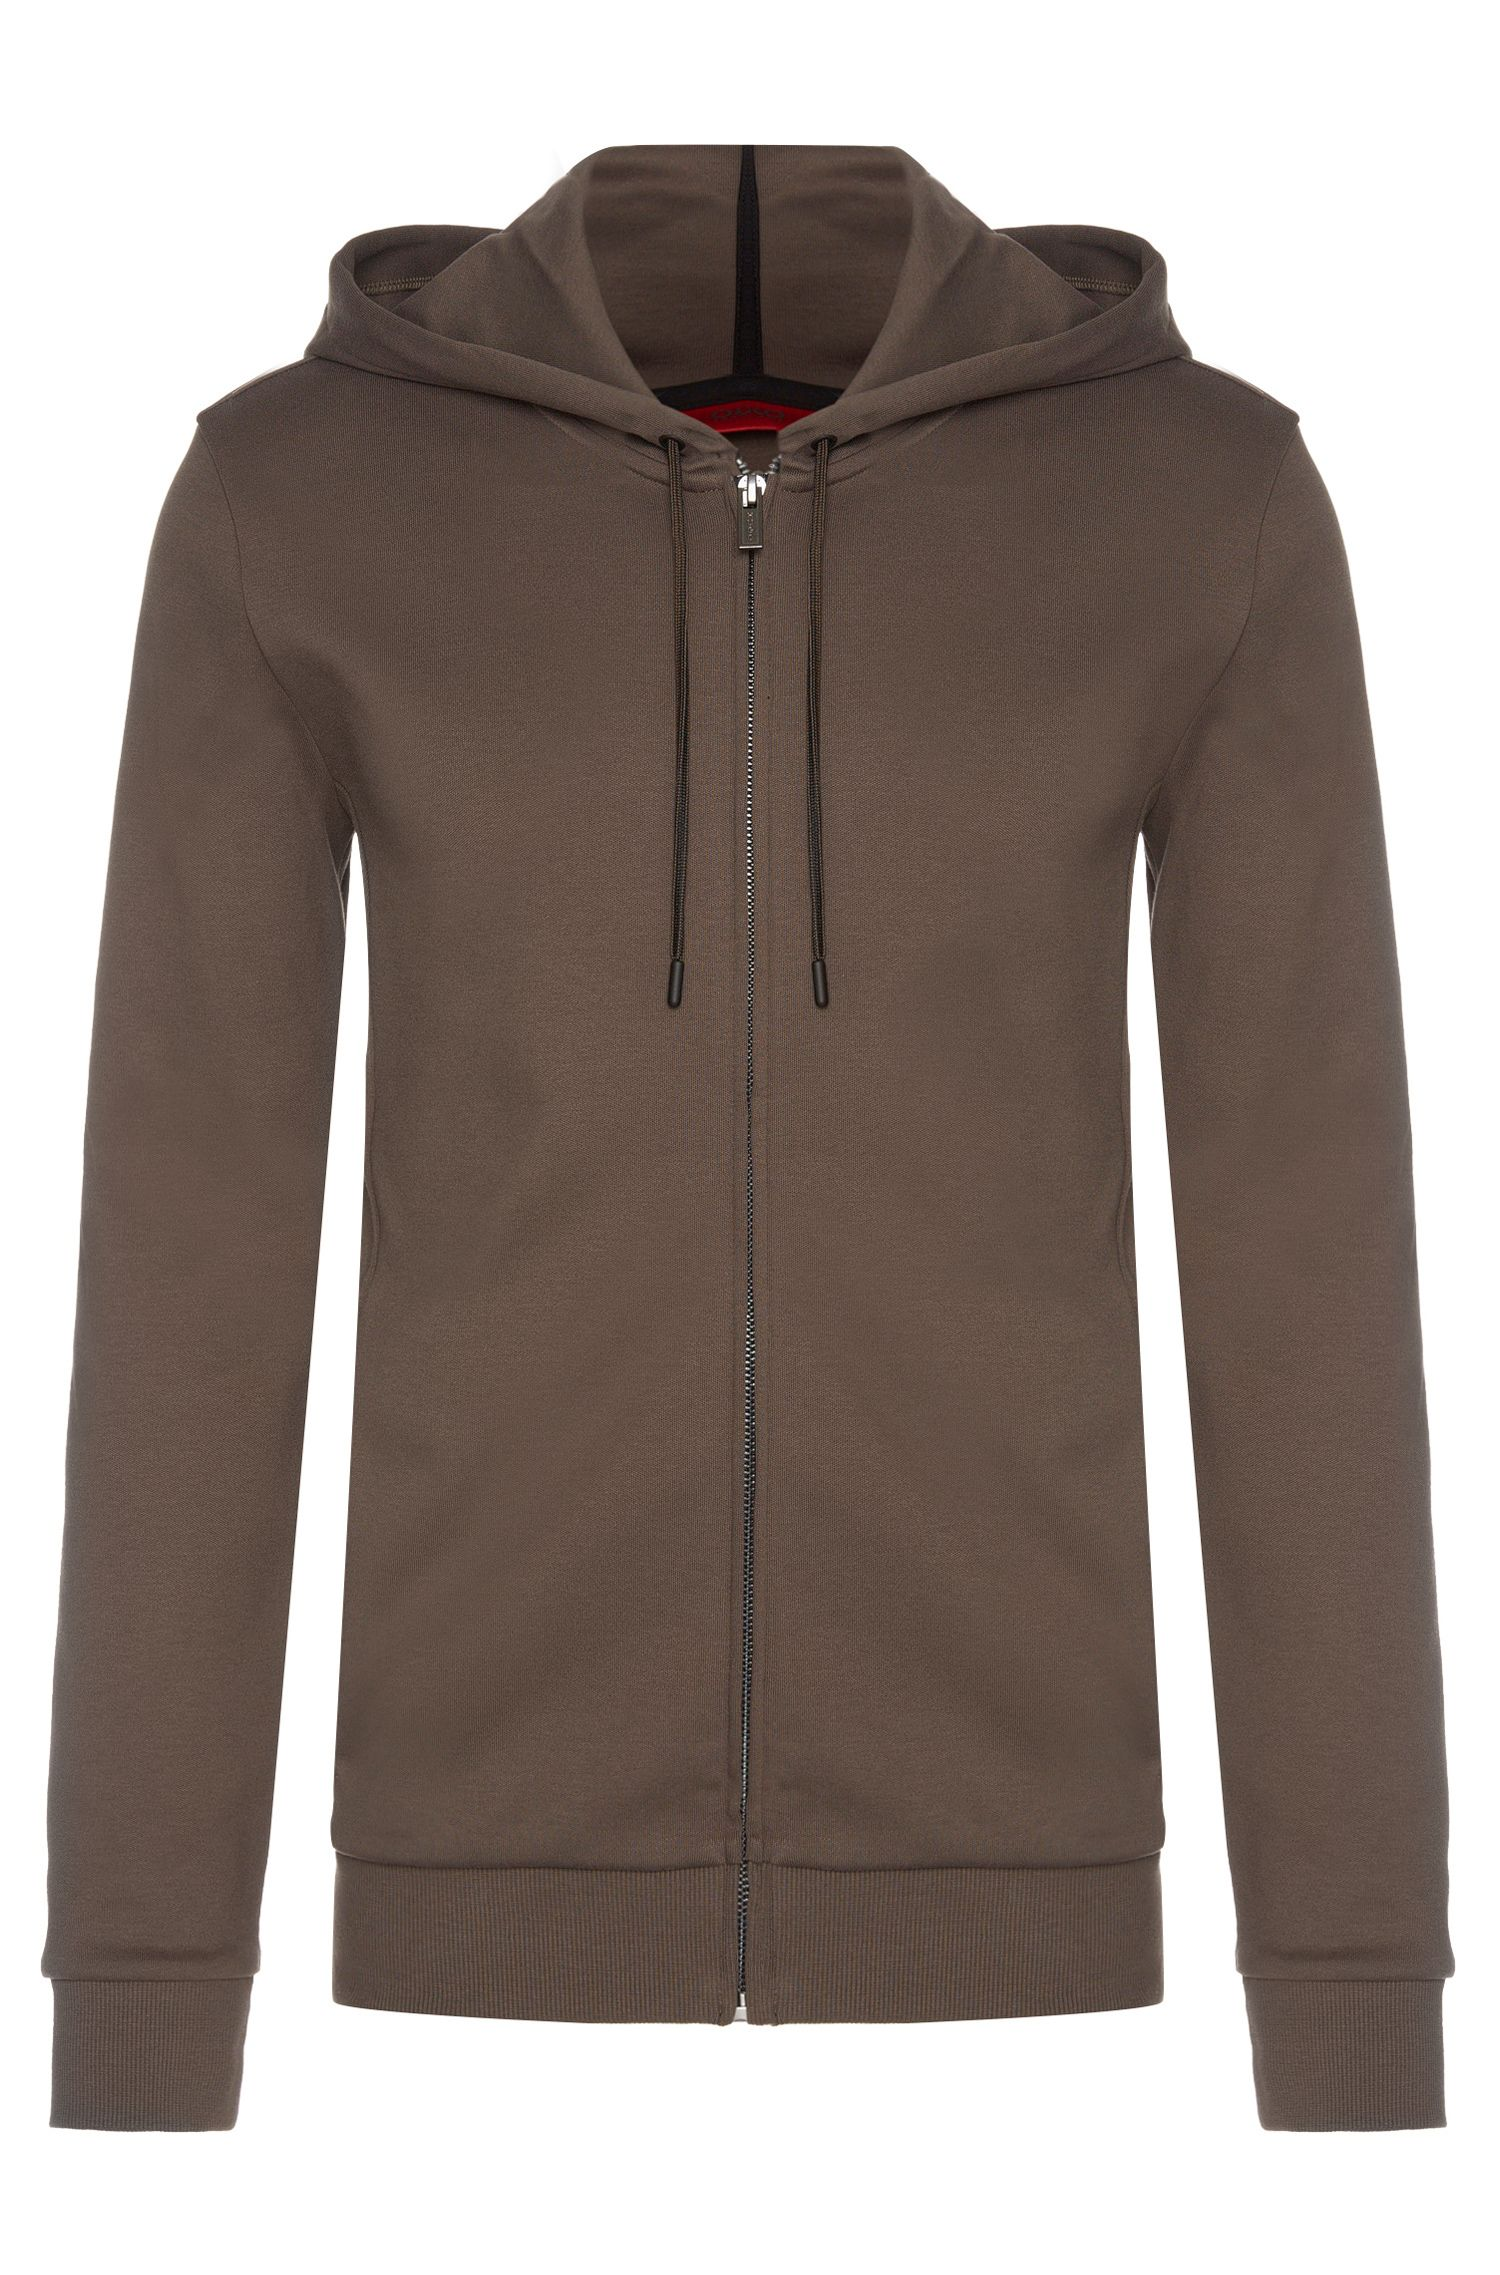 Regular-fit hooded sweatshirt jacket in cotton: 'Dalermo'